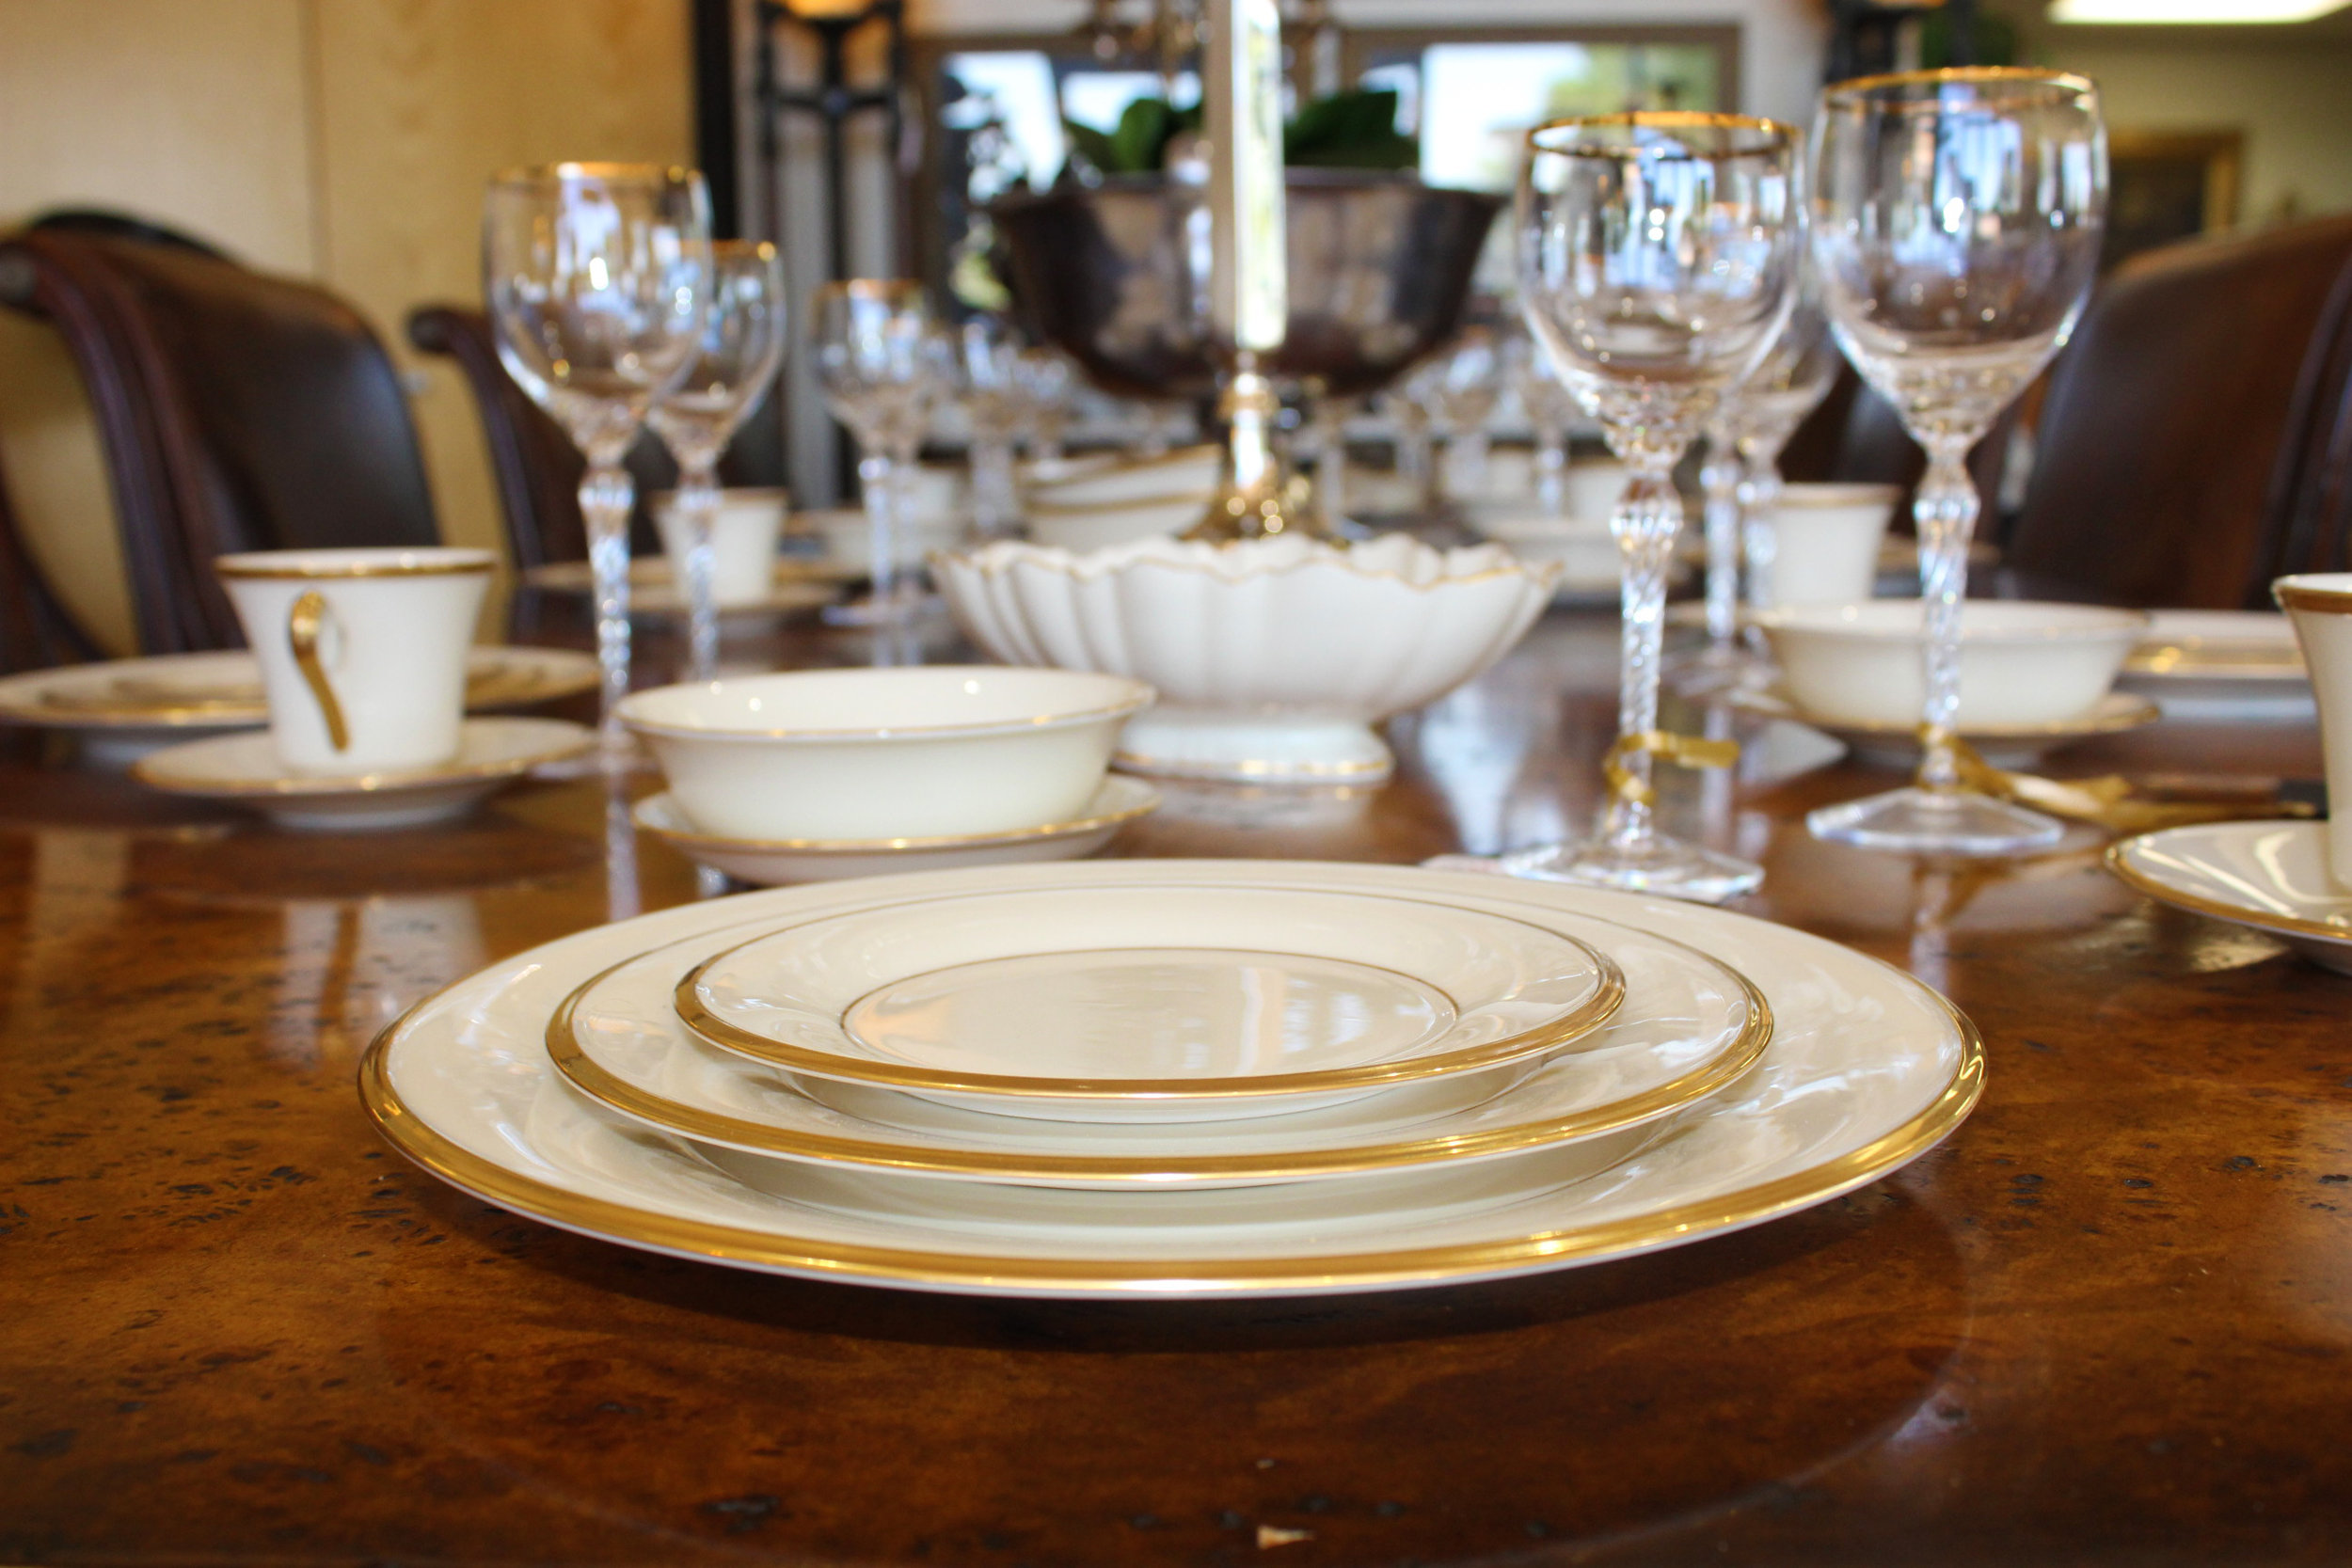 Lenox Eternal 11 - 6 Piece Place Settings Plus Serving Pieces and Additional Setting Pieces